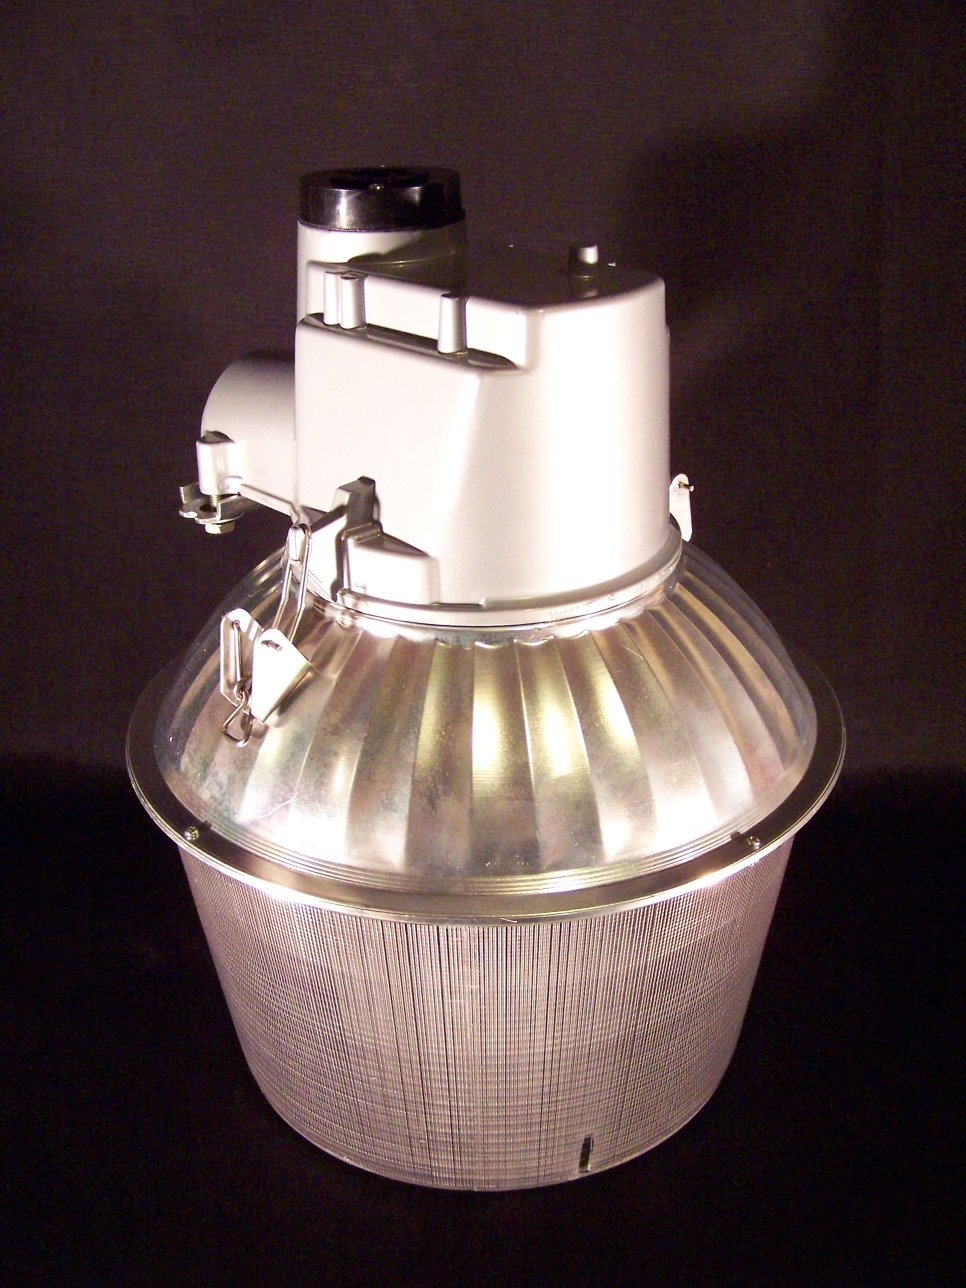 Matech 90 watt light